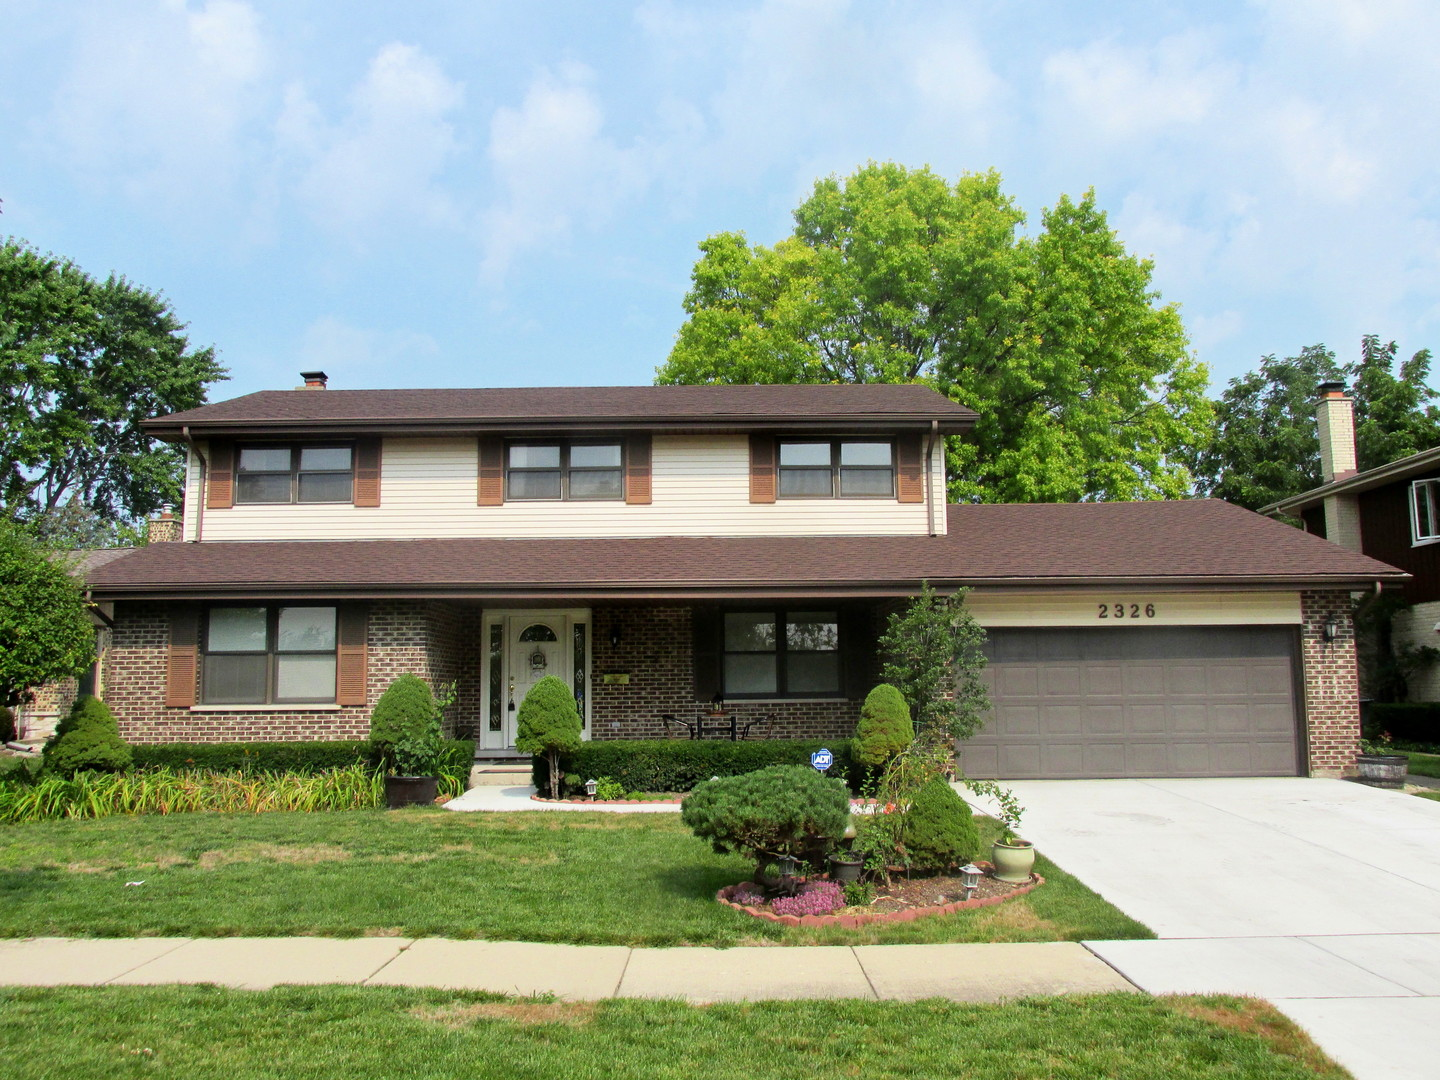 2326 North Prindle Avenue, Arlington Heights in Cook County, IL 60004 Home for Sale